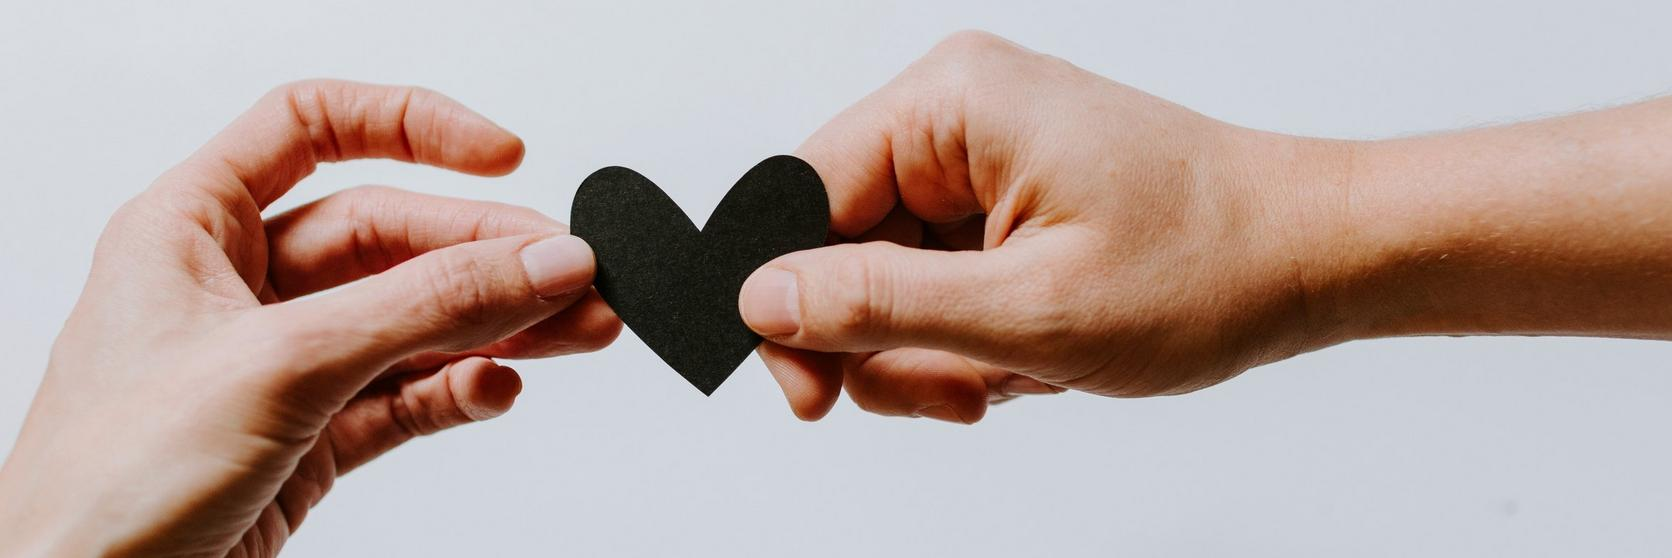 heart-and-hands